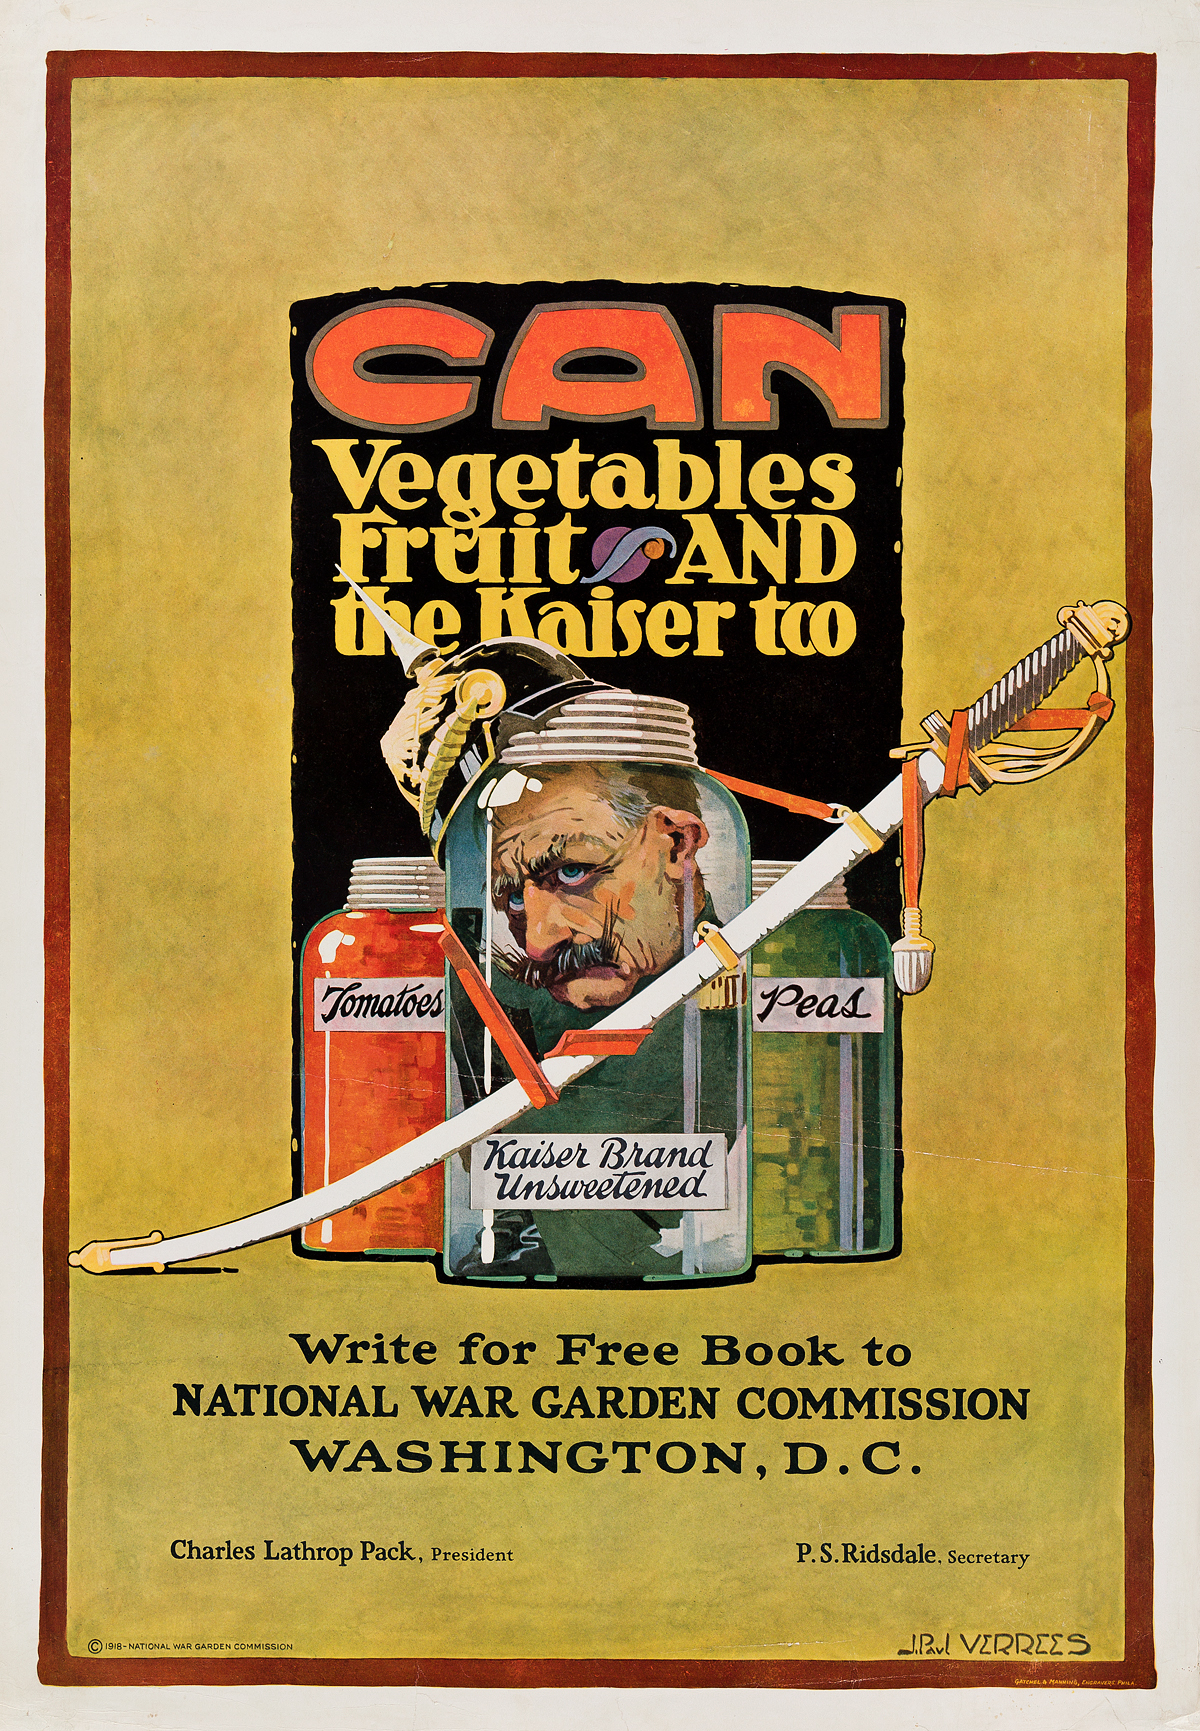 J-PAUL-VERREES-(1889-1942)-CAN-VEGETABLES-FRUITS-AND-THE-KAISER-TOO-1918-32x22-inches-81x56-cm-Gatchel--Manning-Philadelphia